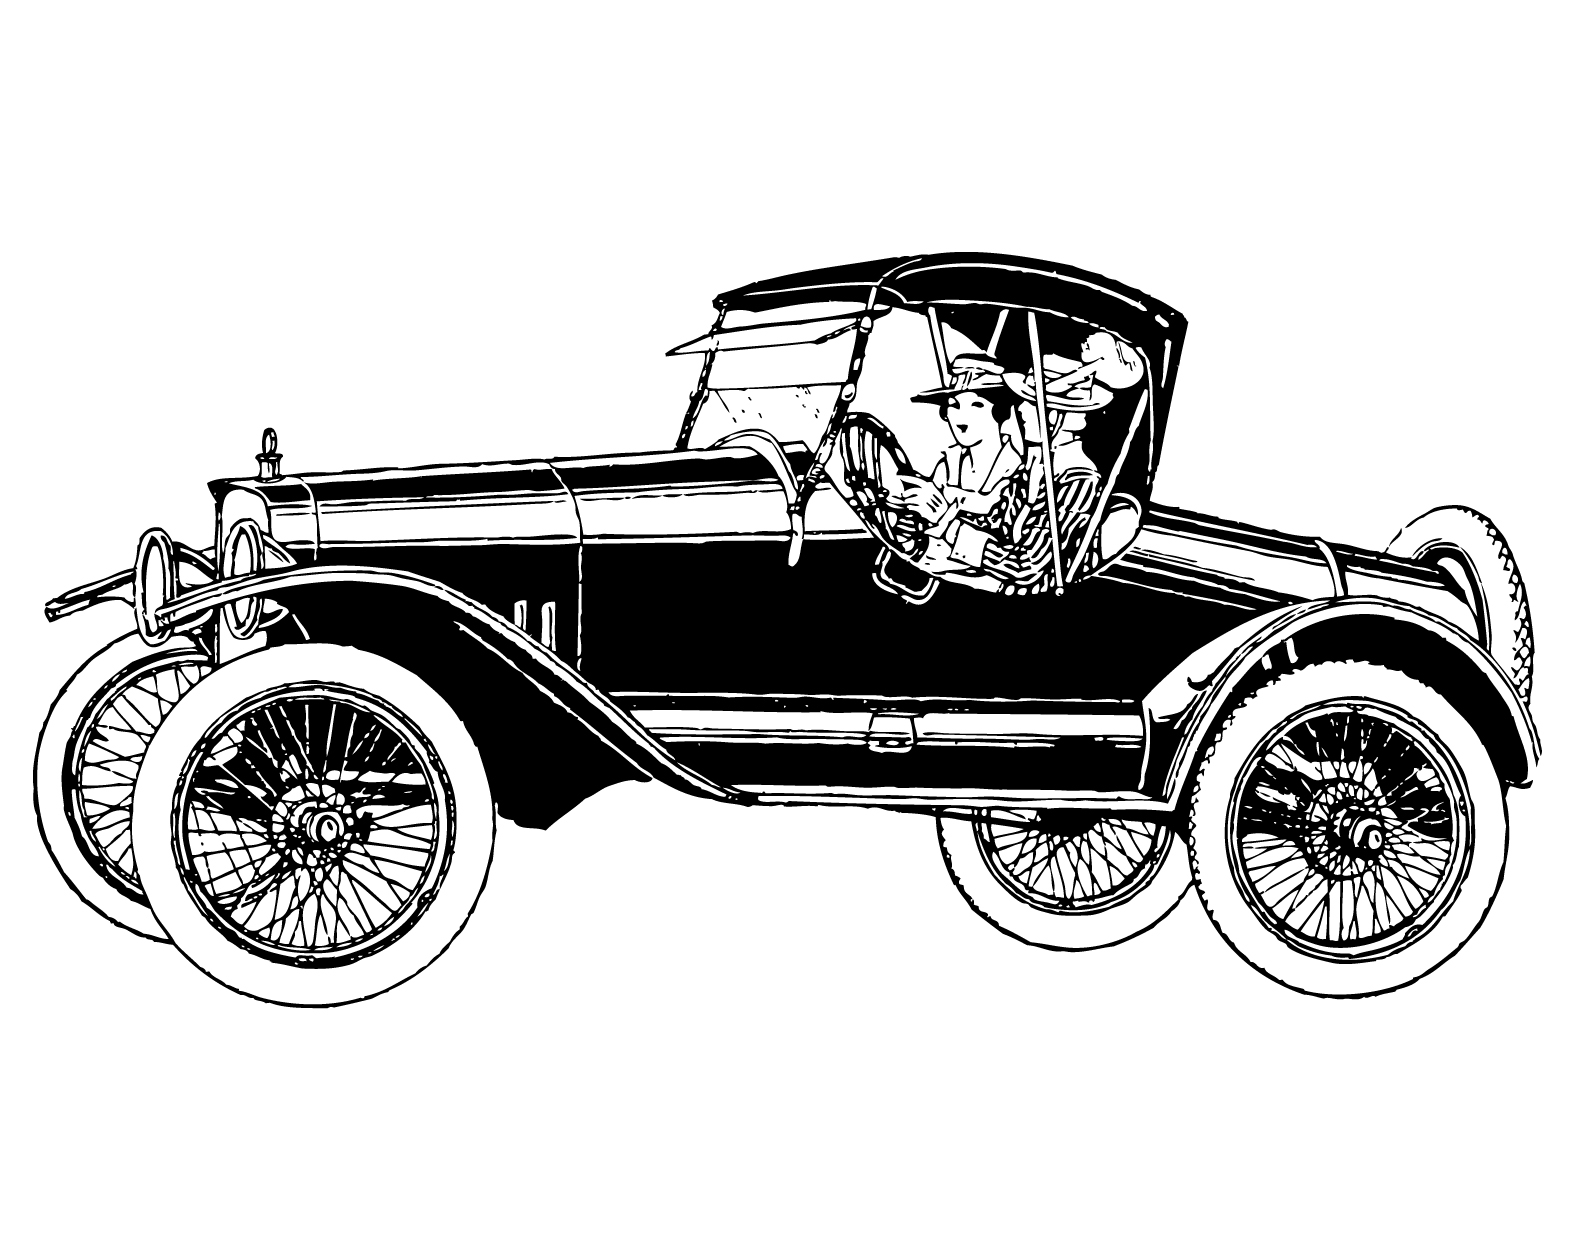 Classic car and new car picture clipart jpg black and white Classic car and new car picture clipart - ClipartFest jpg black and white